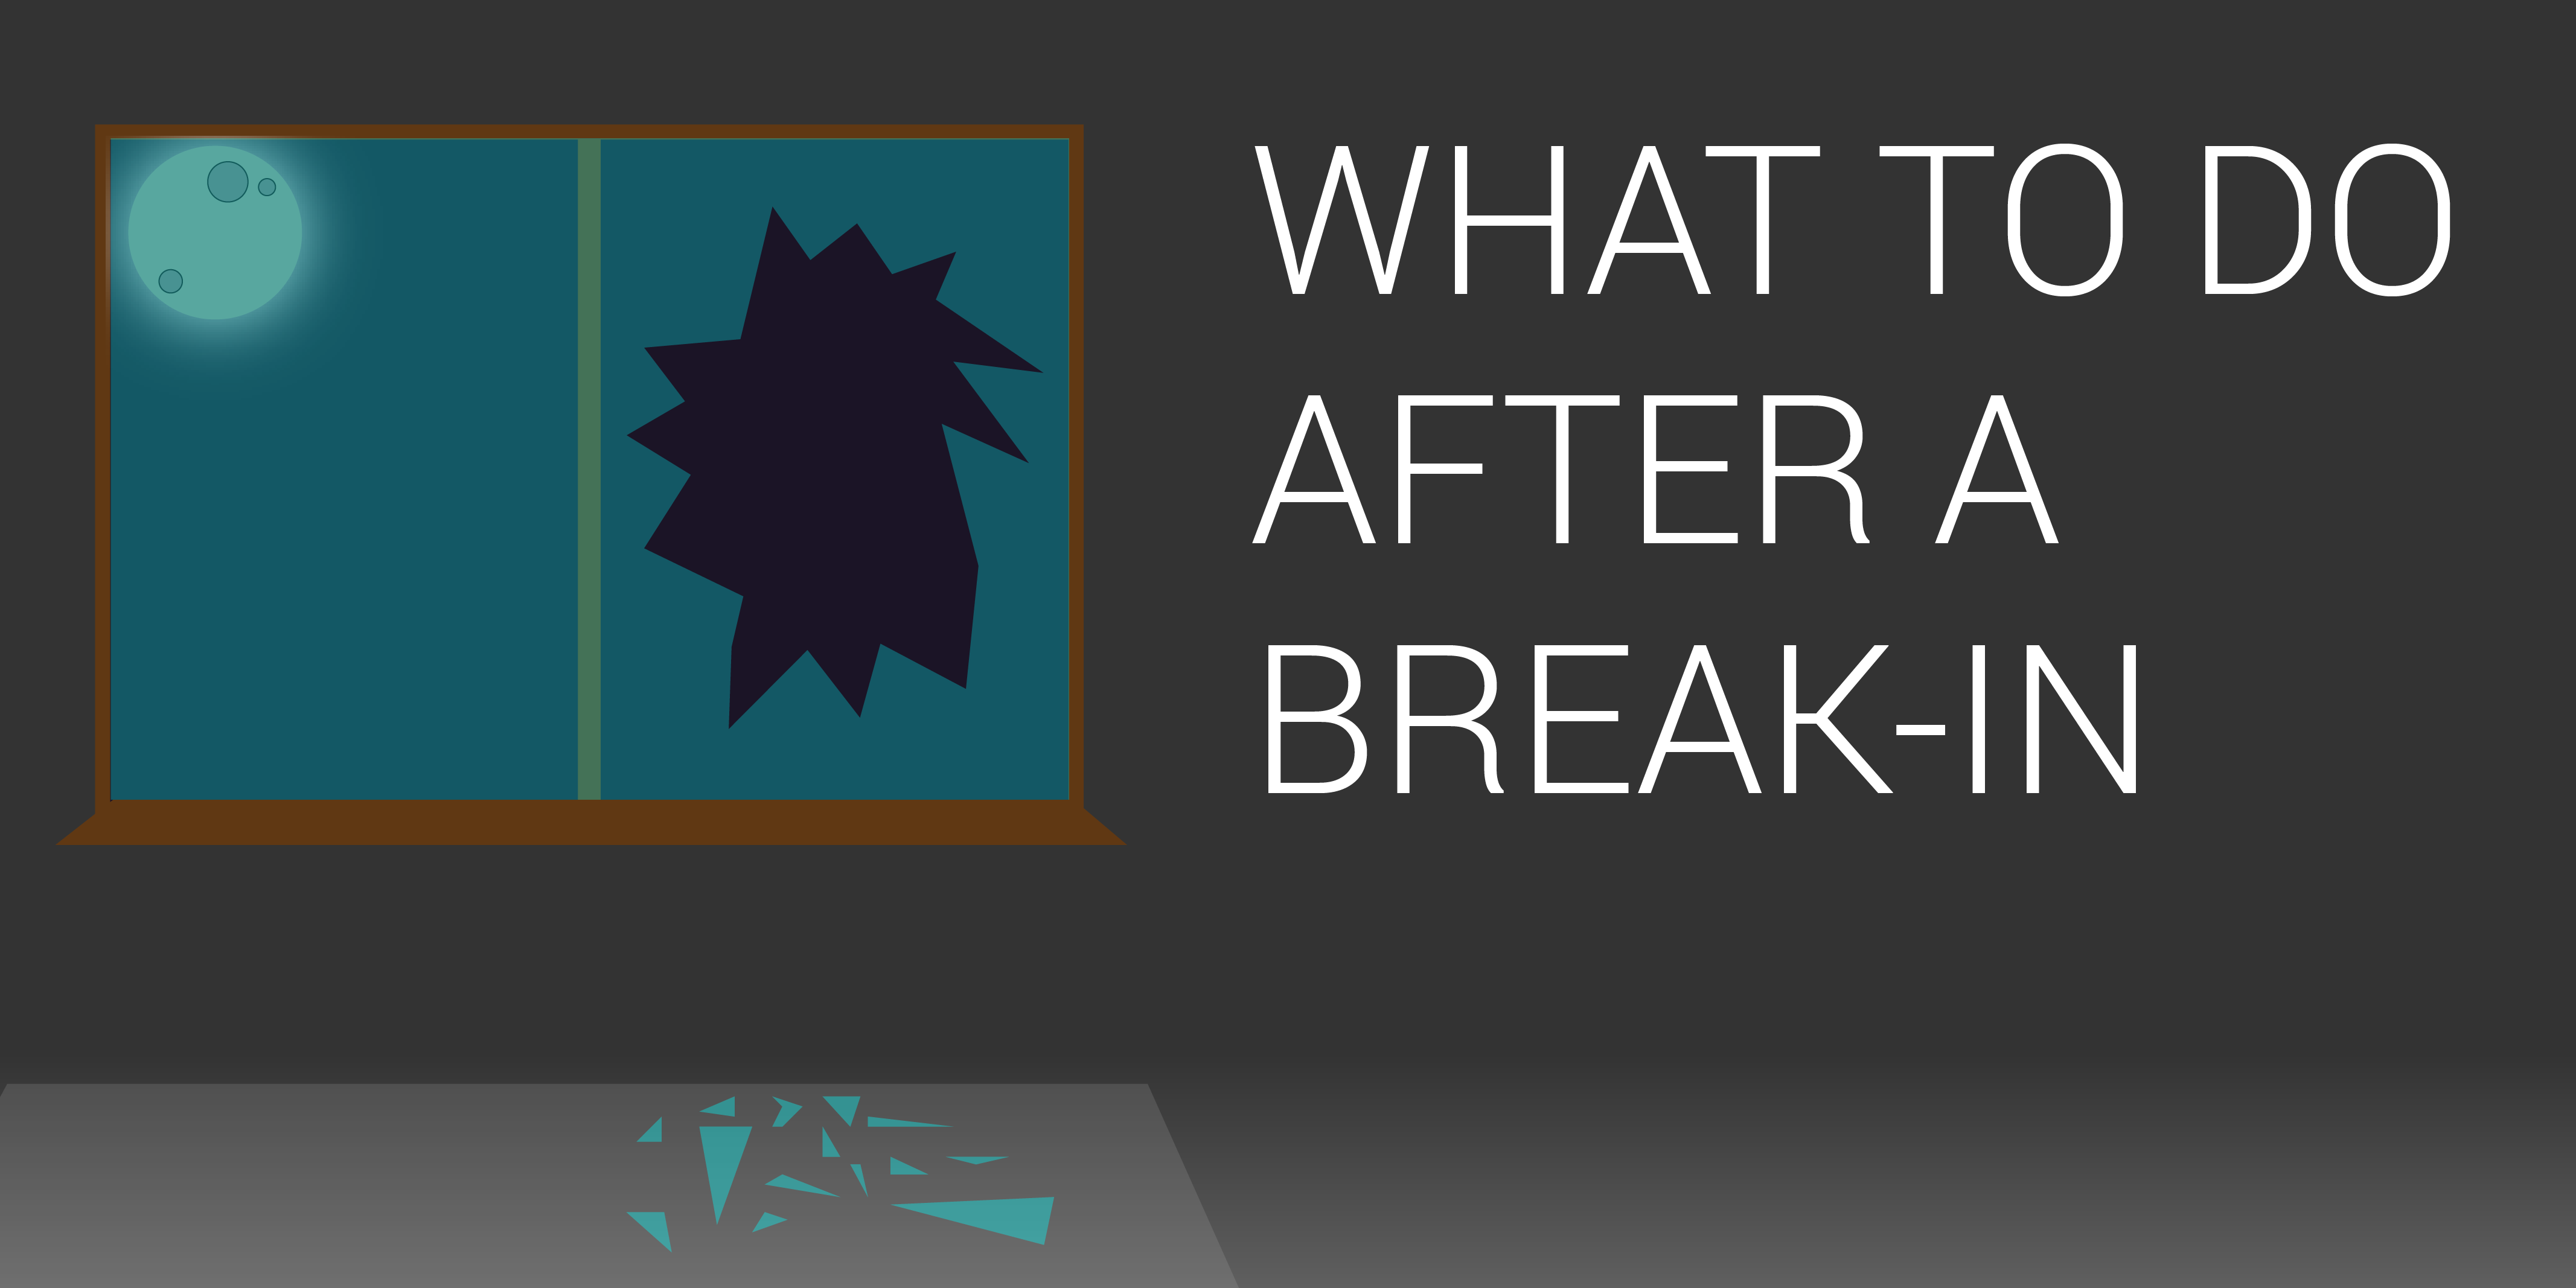 What to do after a break-in